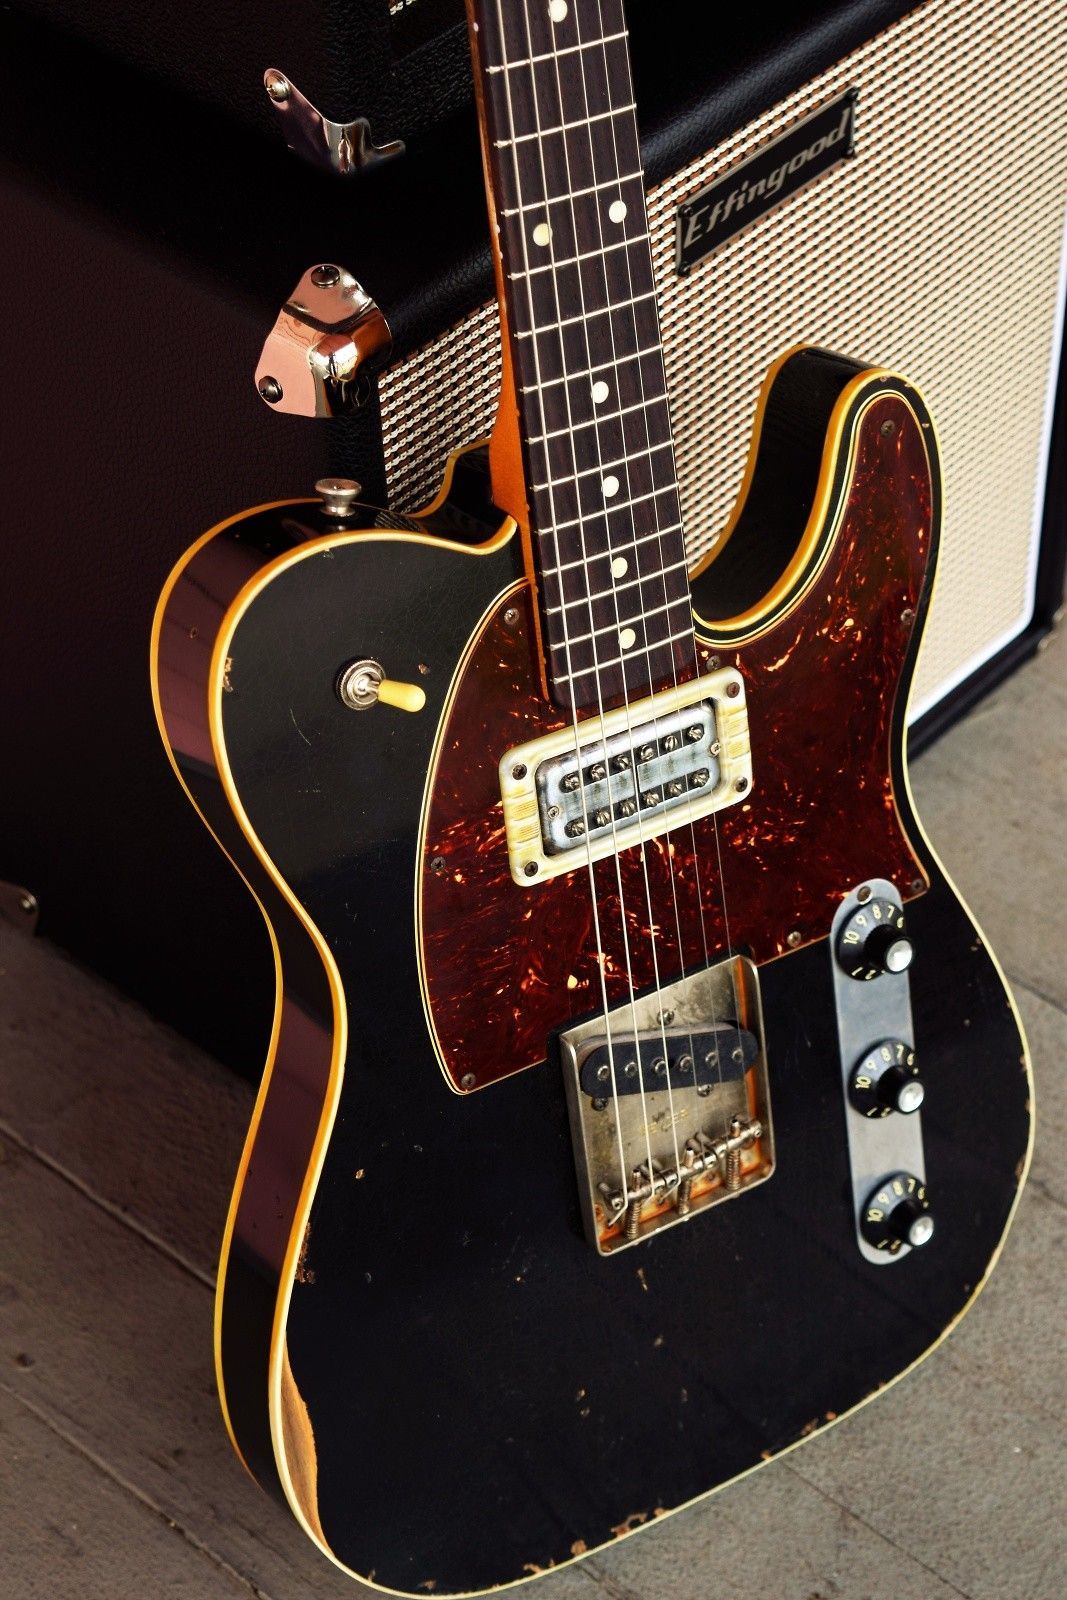 Fender Custom Telecaster Gear